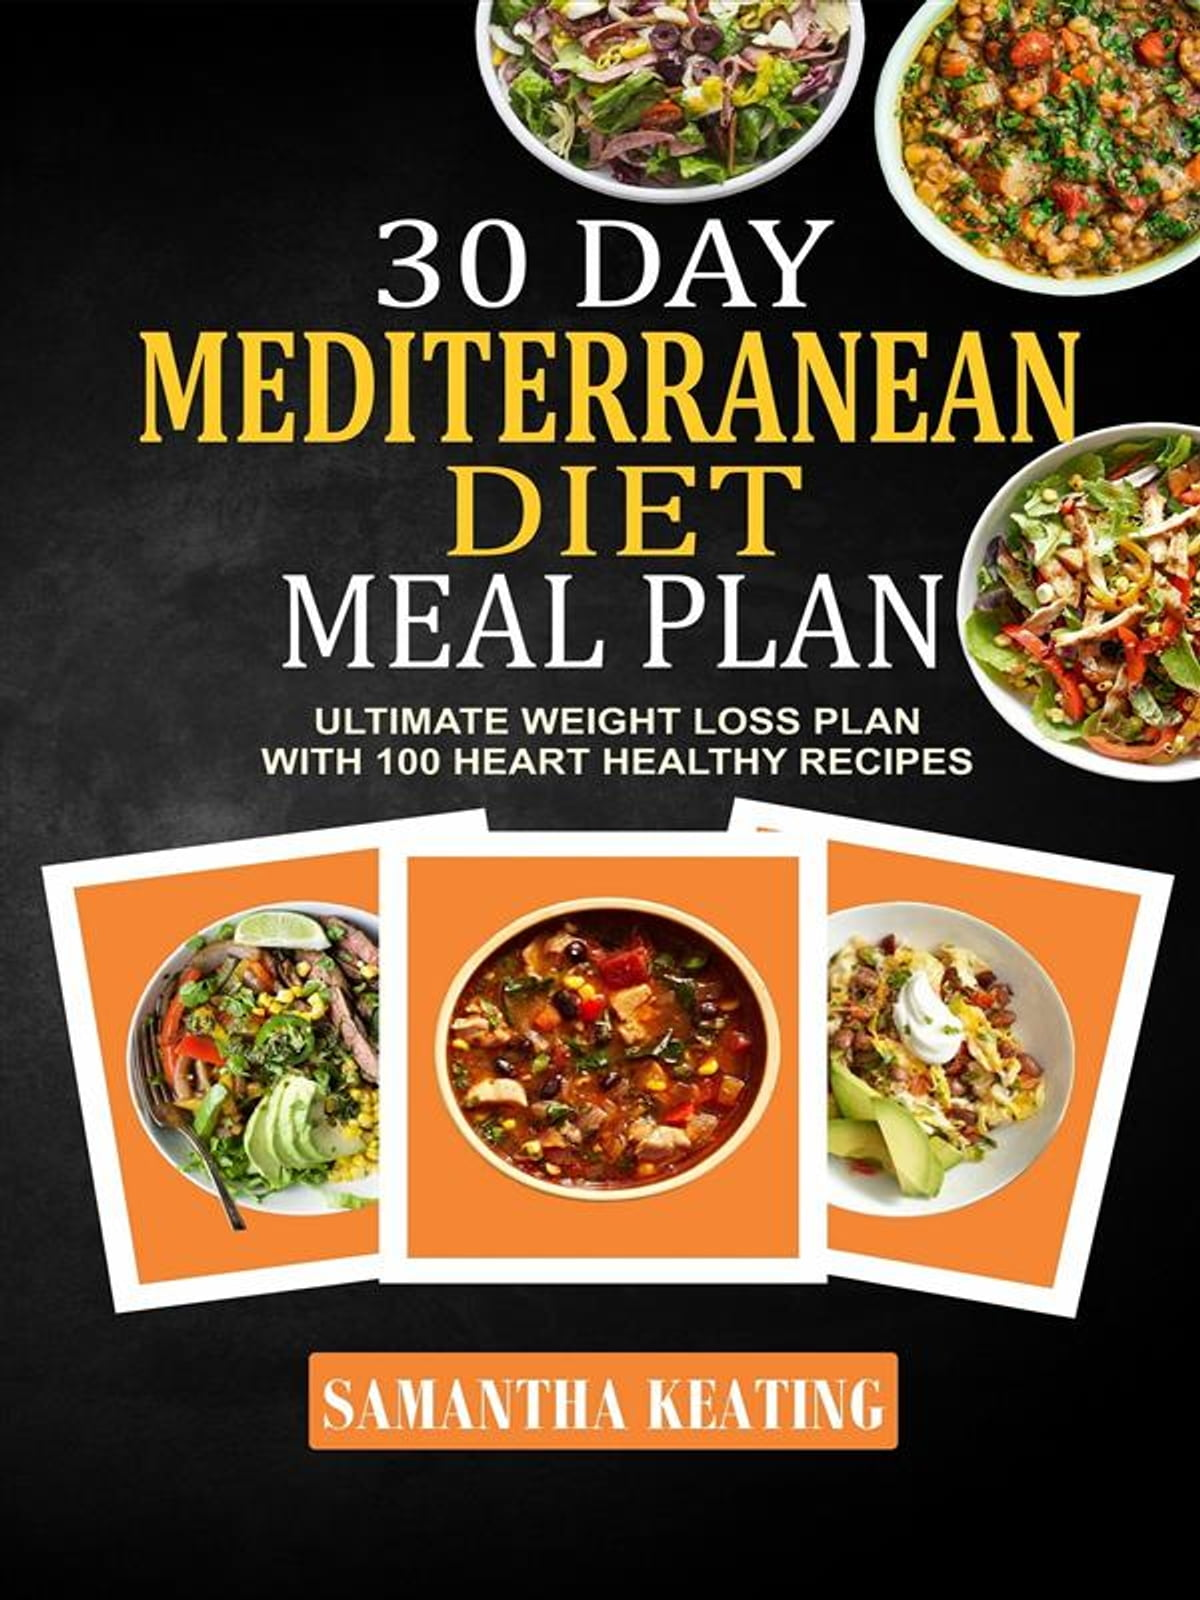 Meal plan for weight loss recipes